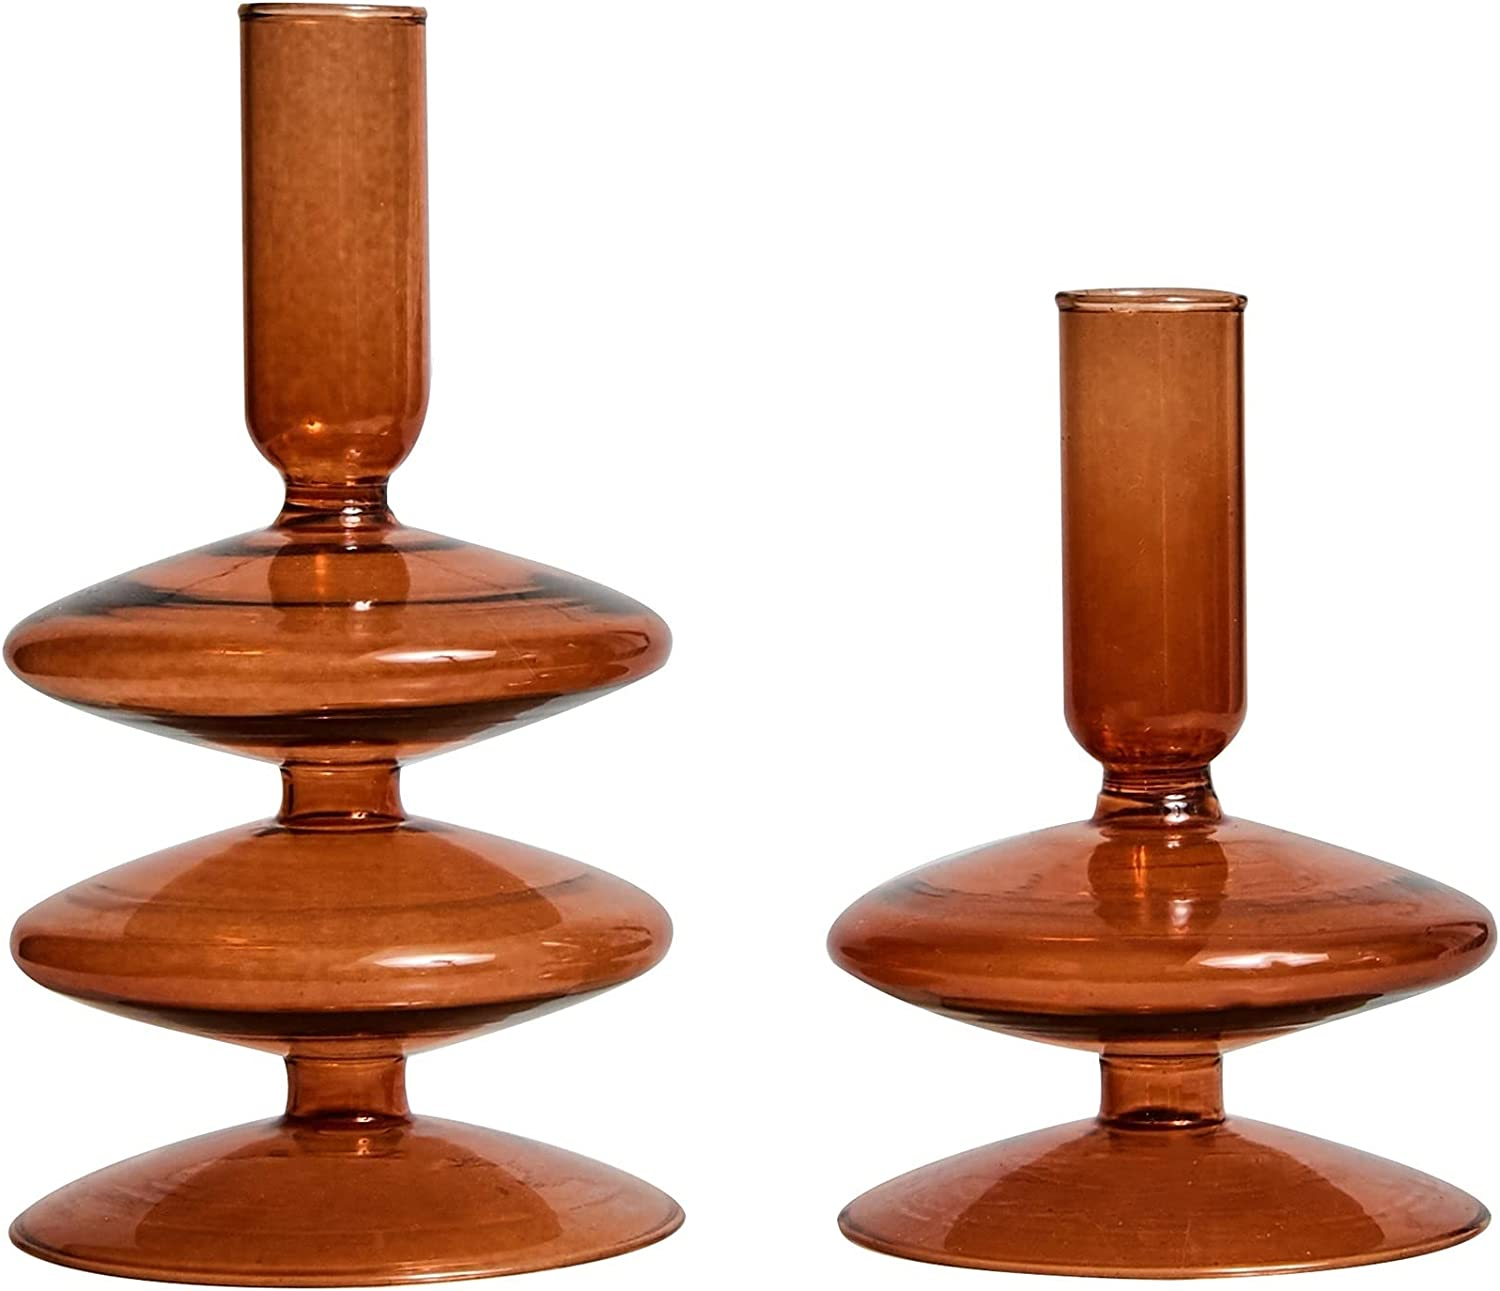 JQDMBH Candlestick Holder Milwaukee Mall Candle Set Ho 2 of Luxury Taper